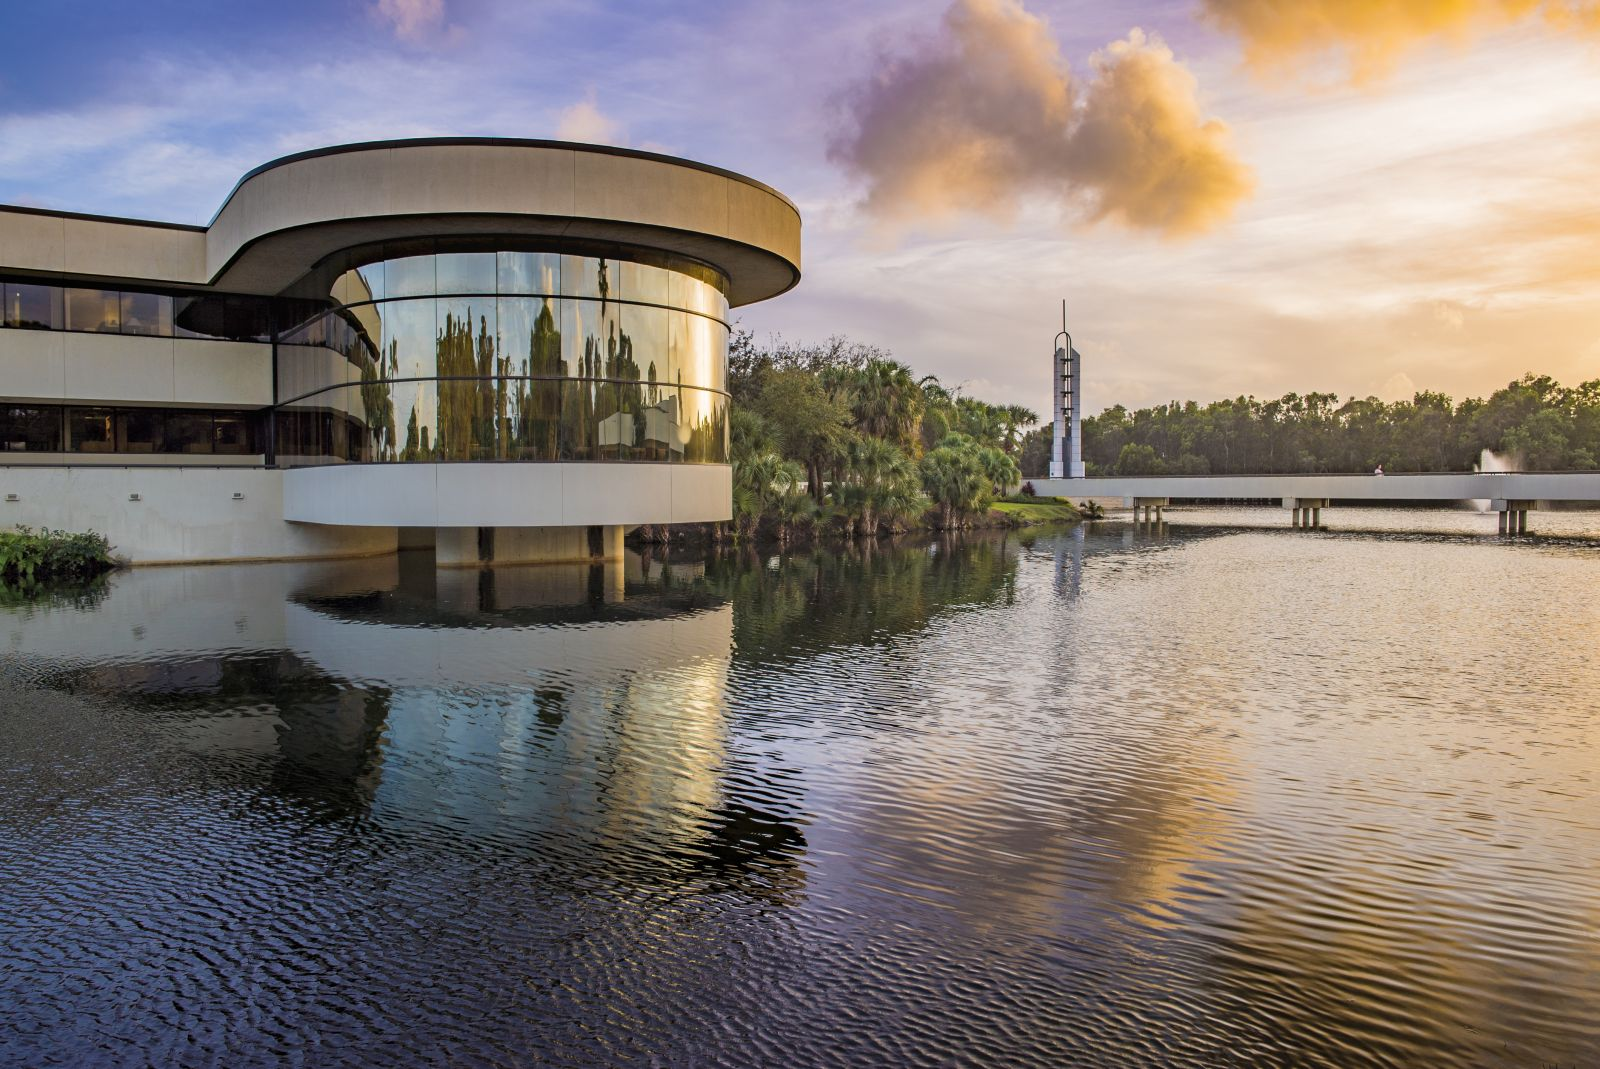 Keiser University, in West Palm Beach, FL